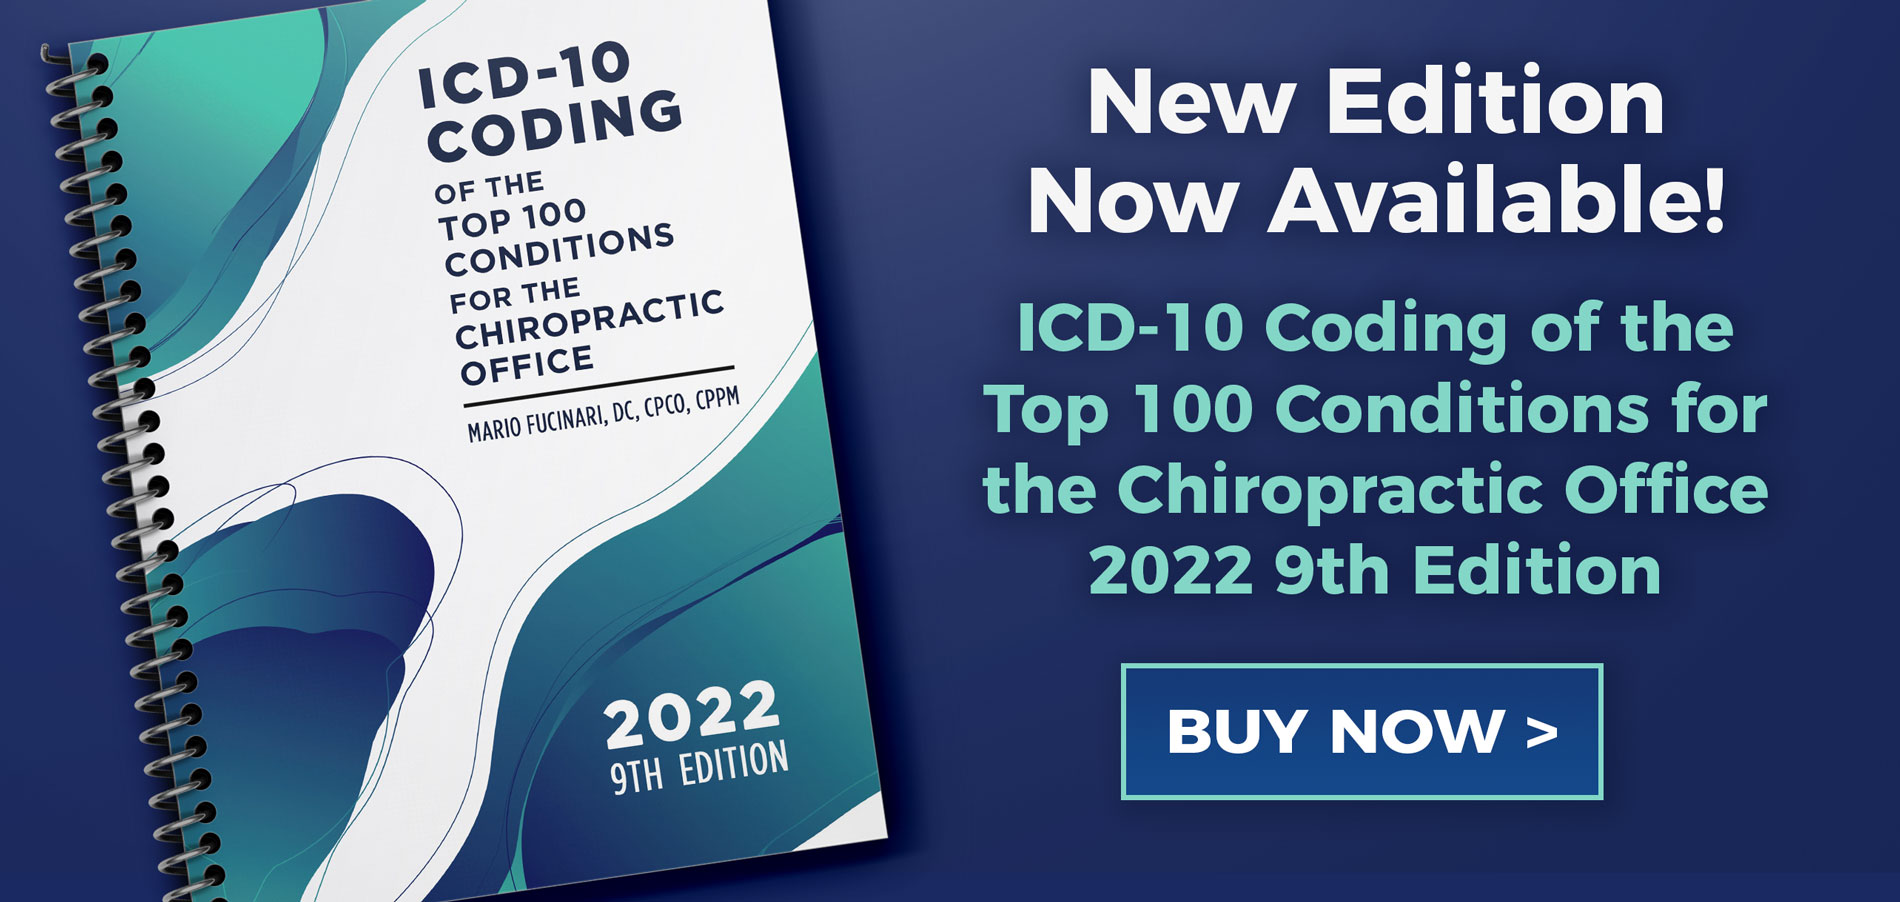 New Edition Now Available! ICD-10 Coding of thee Top 100 Conditions for the Chiropractic Office 2022 9th Edition